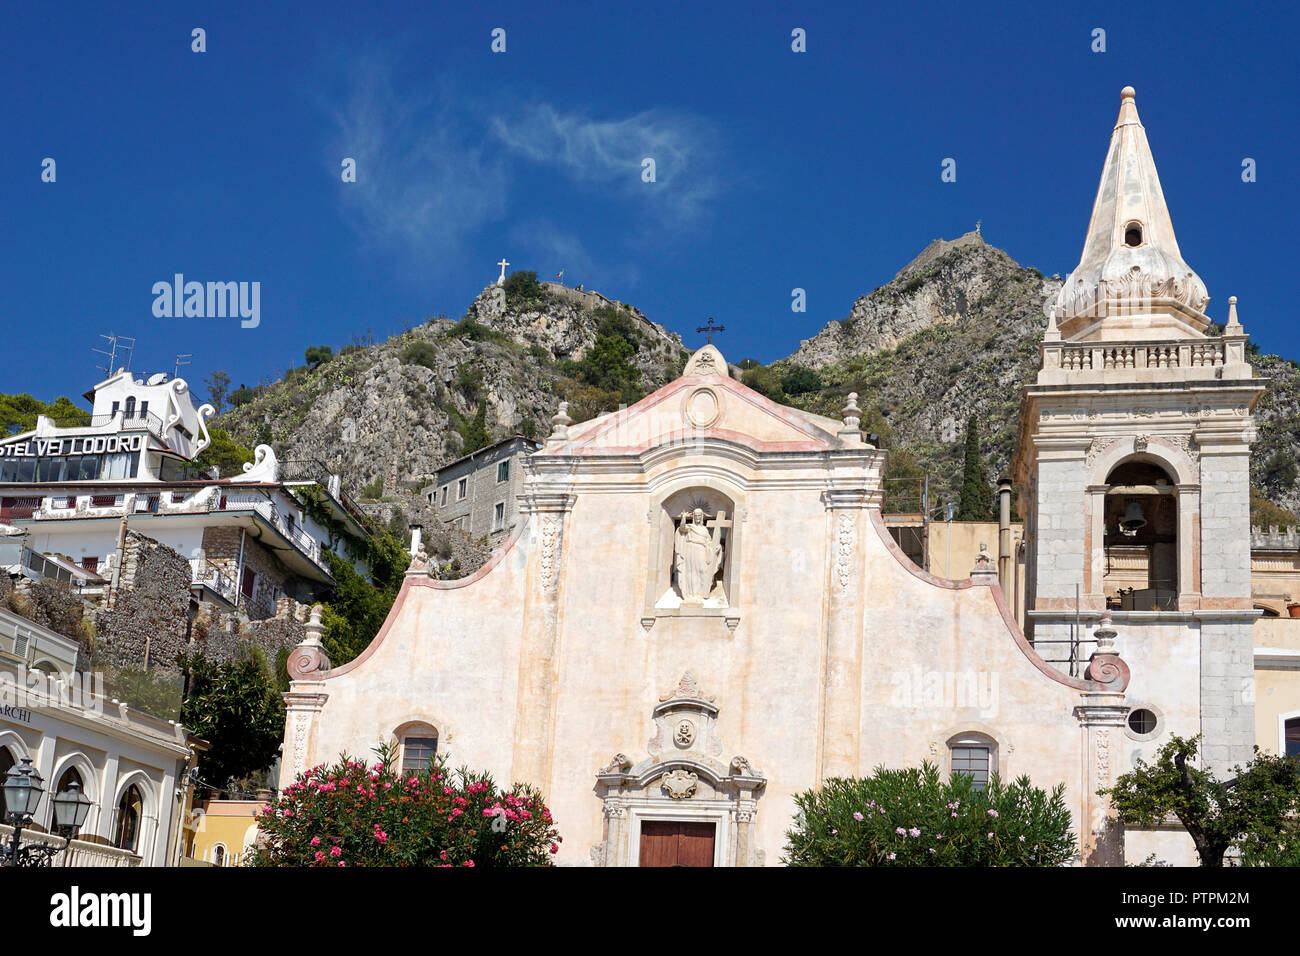 The church of San Giuseppe at Piazza IX. Aprile, old town of Taormina, Sicily, Italy - Stock Image